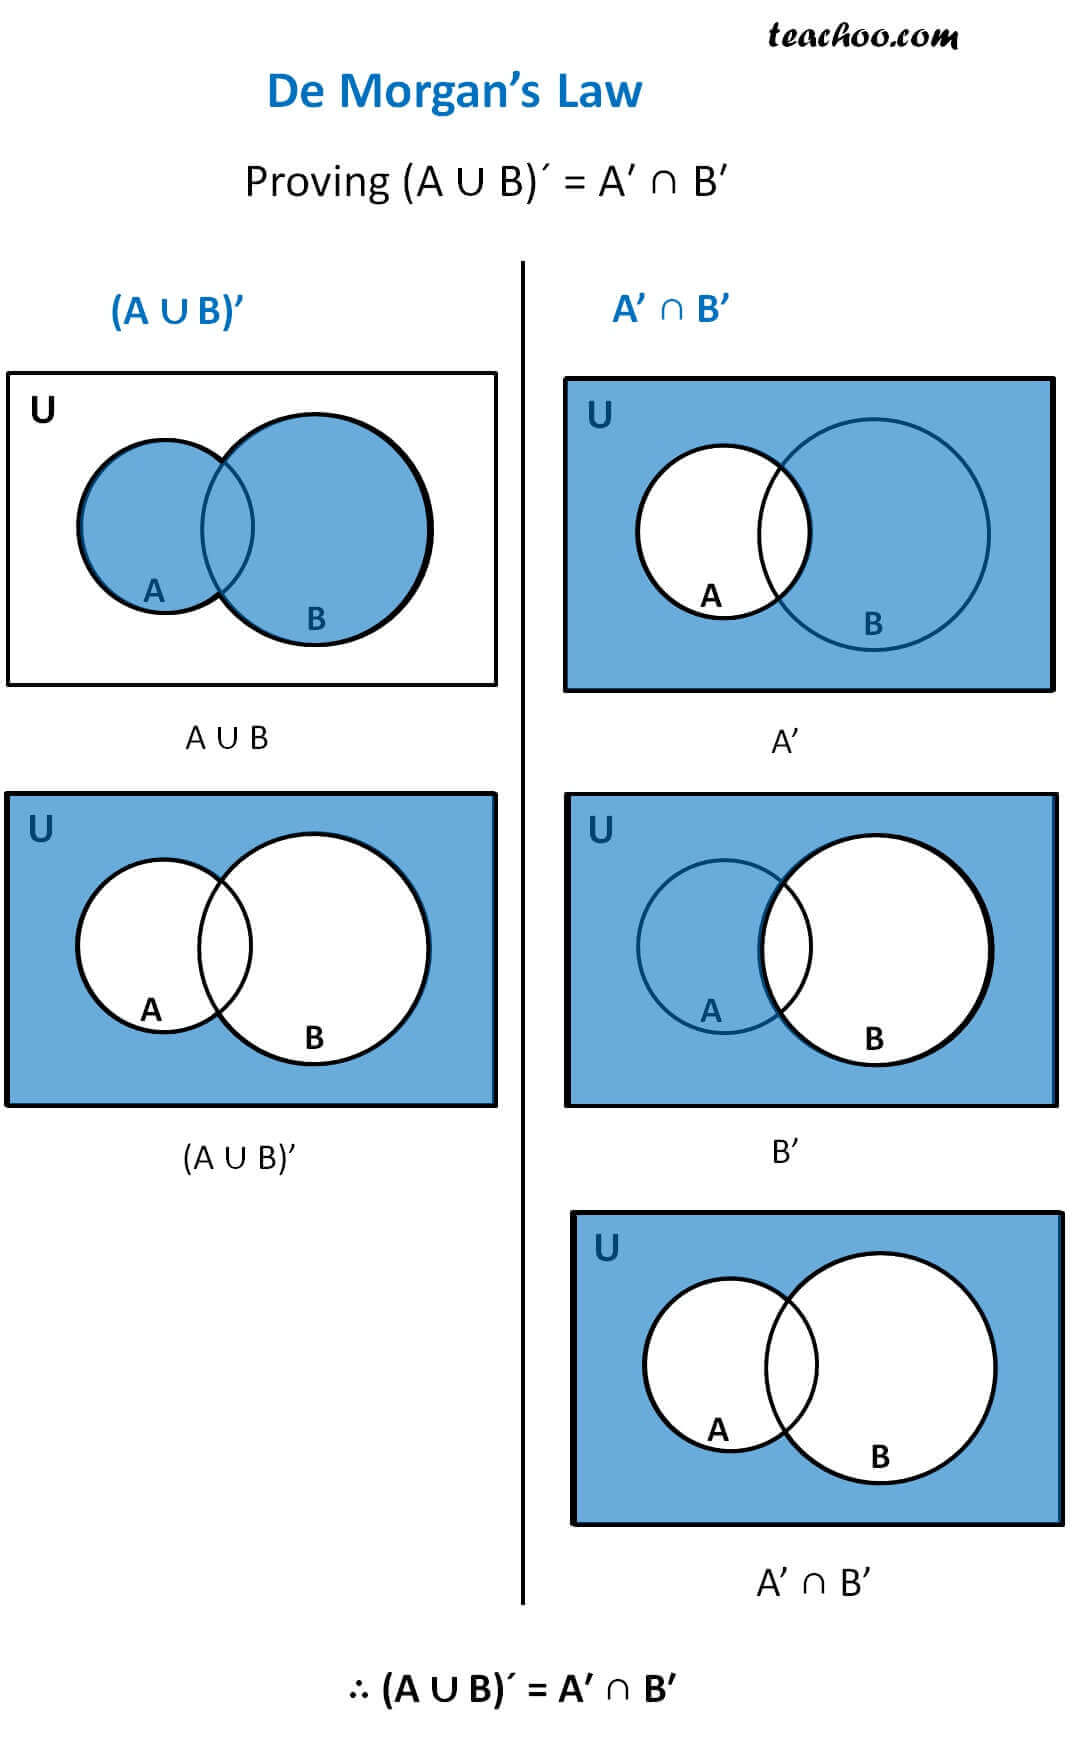 hight resolution of de morgans law proving union of complement is equal to intersection of complements jpg